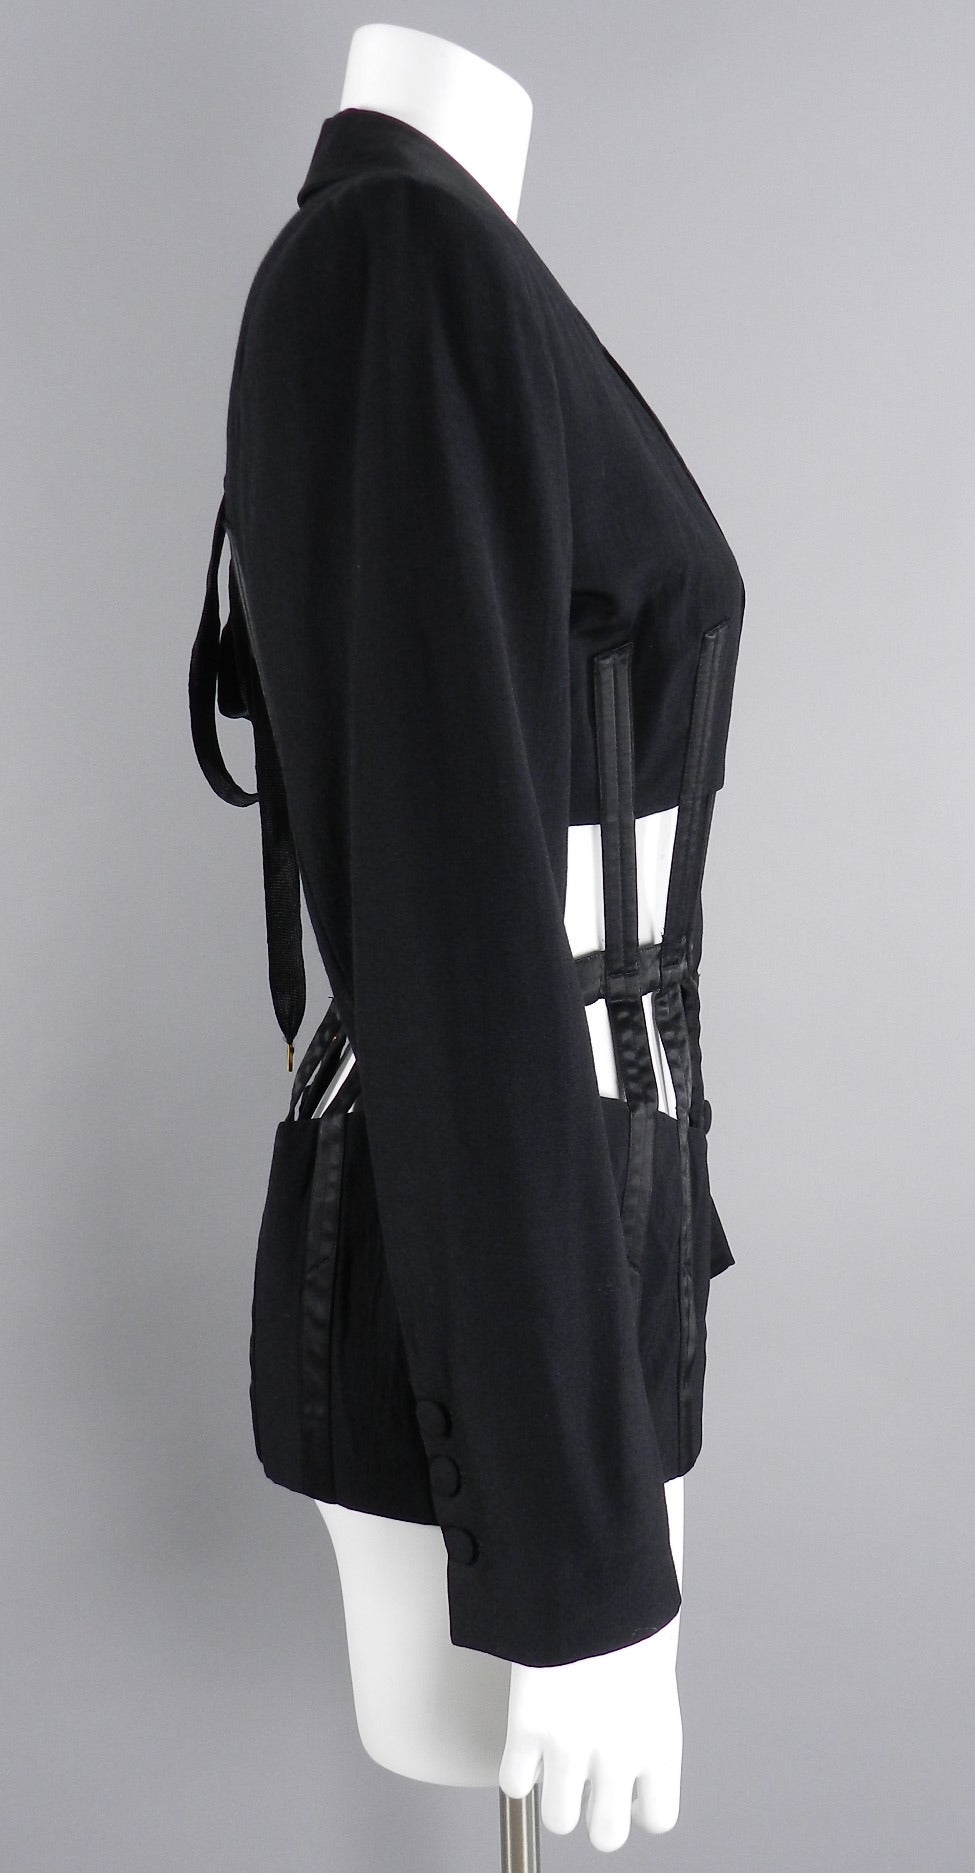 Jean Paul Gaultier Iconic 1989 Black Corset Cage Jacket For Sale 1